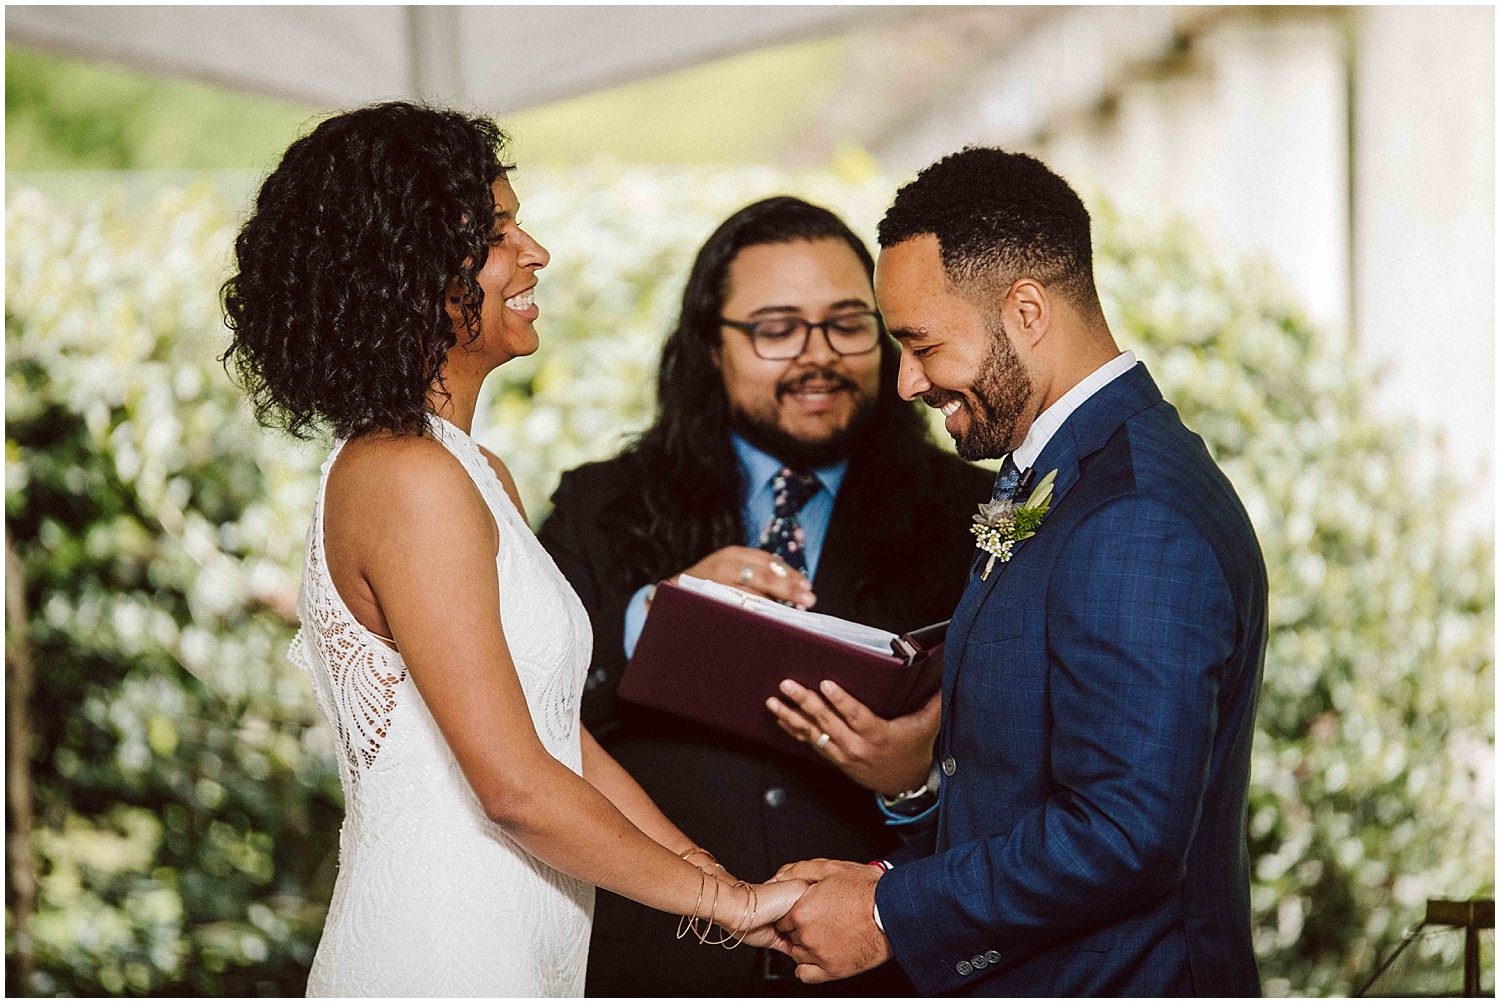 spring wedding ceremony at cator woolford gardens